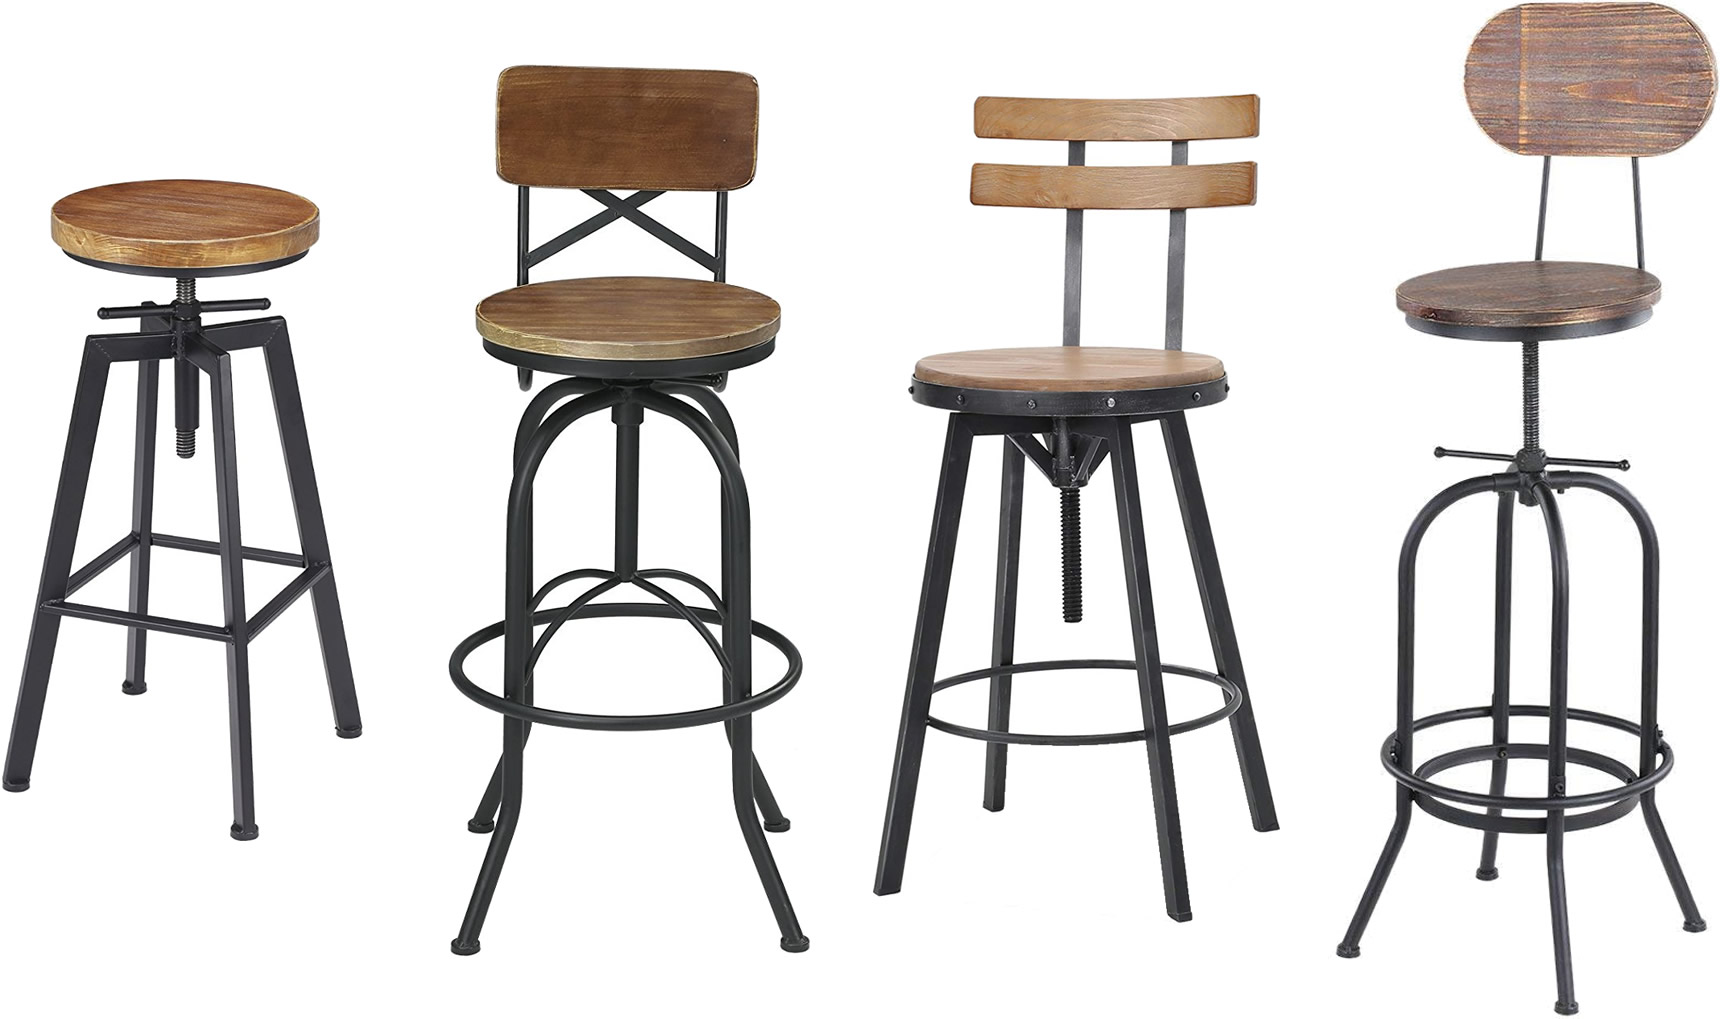 Awe Inspiring Vintage Industrial Drafting Stools My Design42 Machost Co Dining Chair Design Ideas Machostcouk